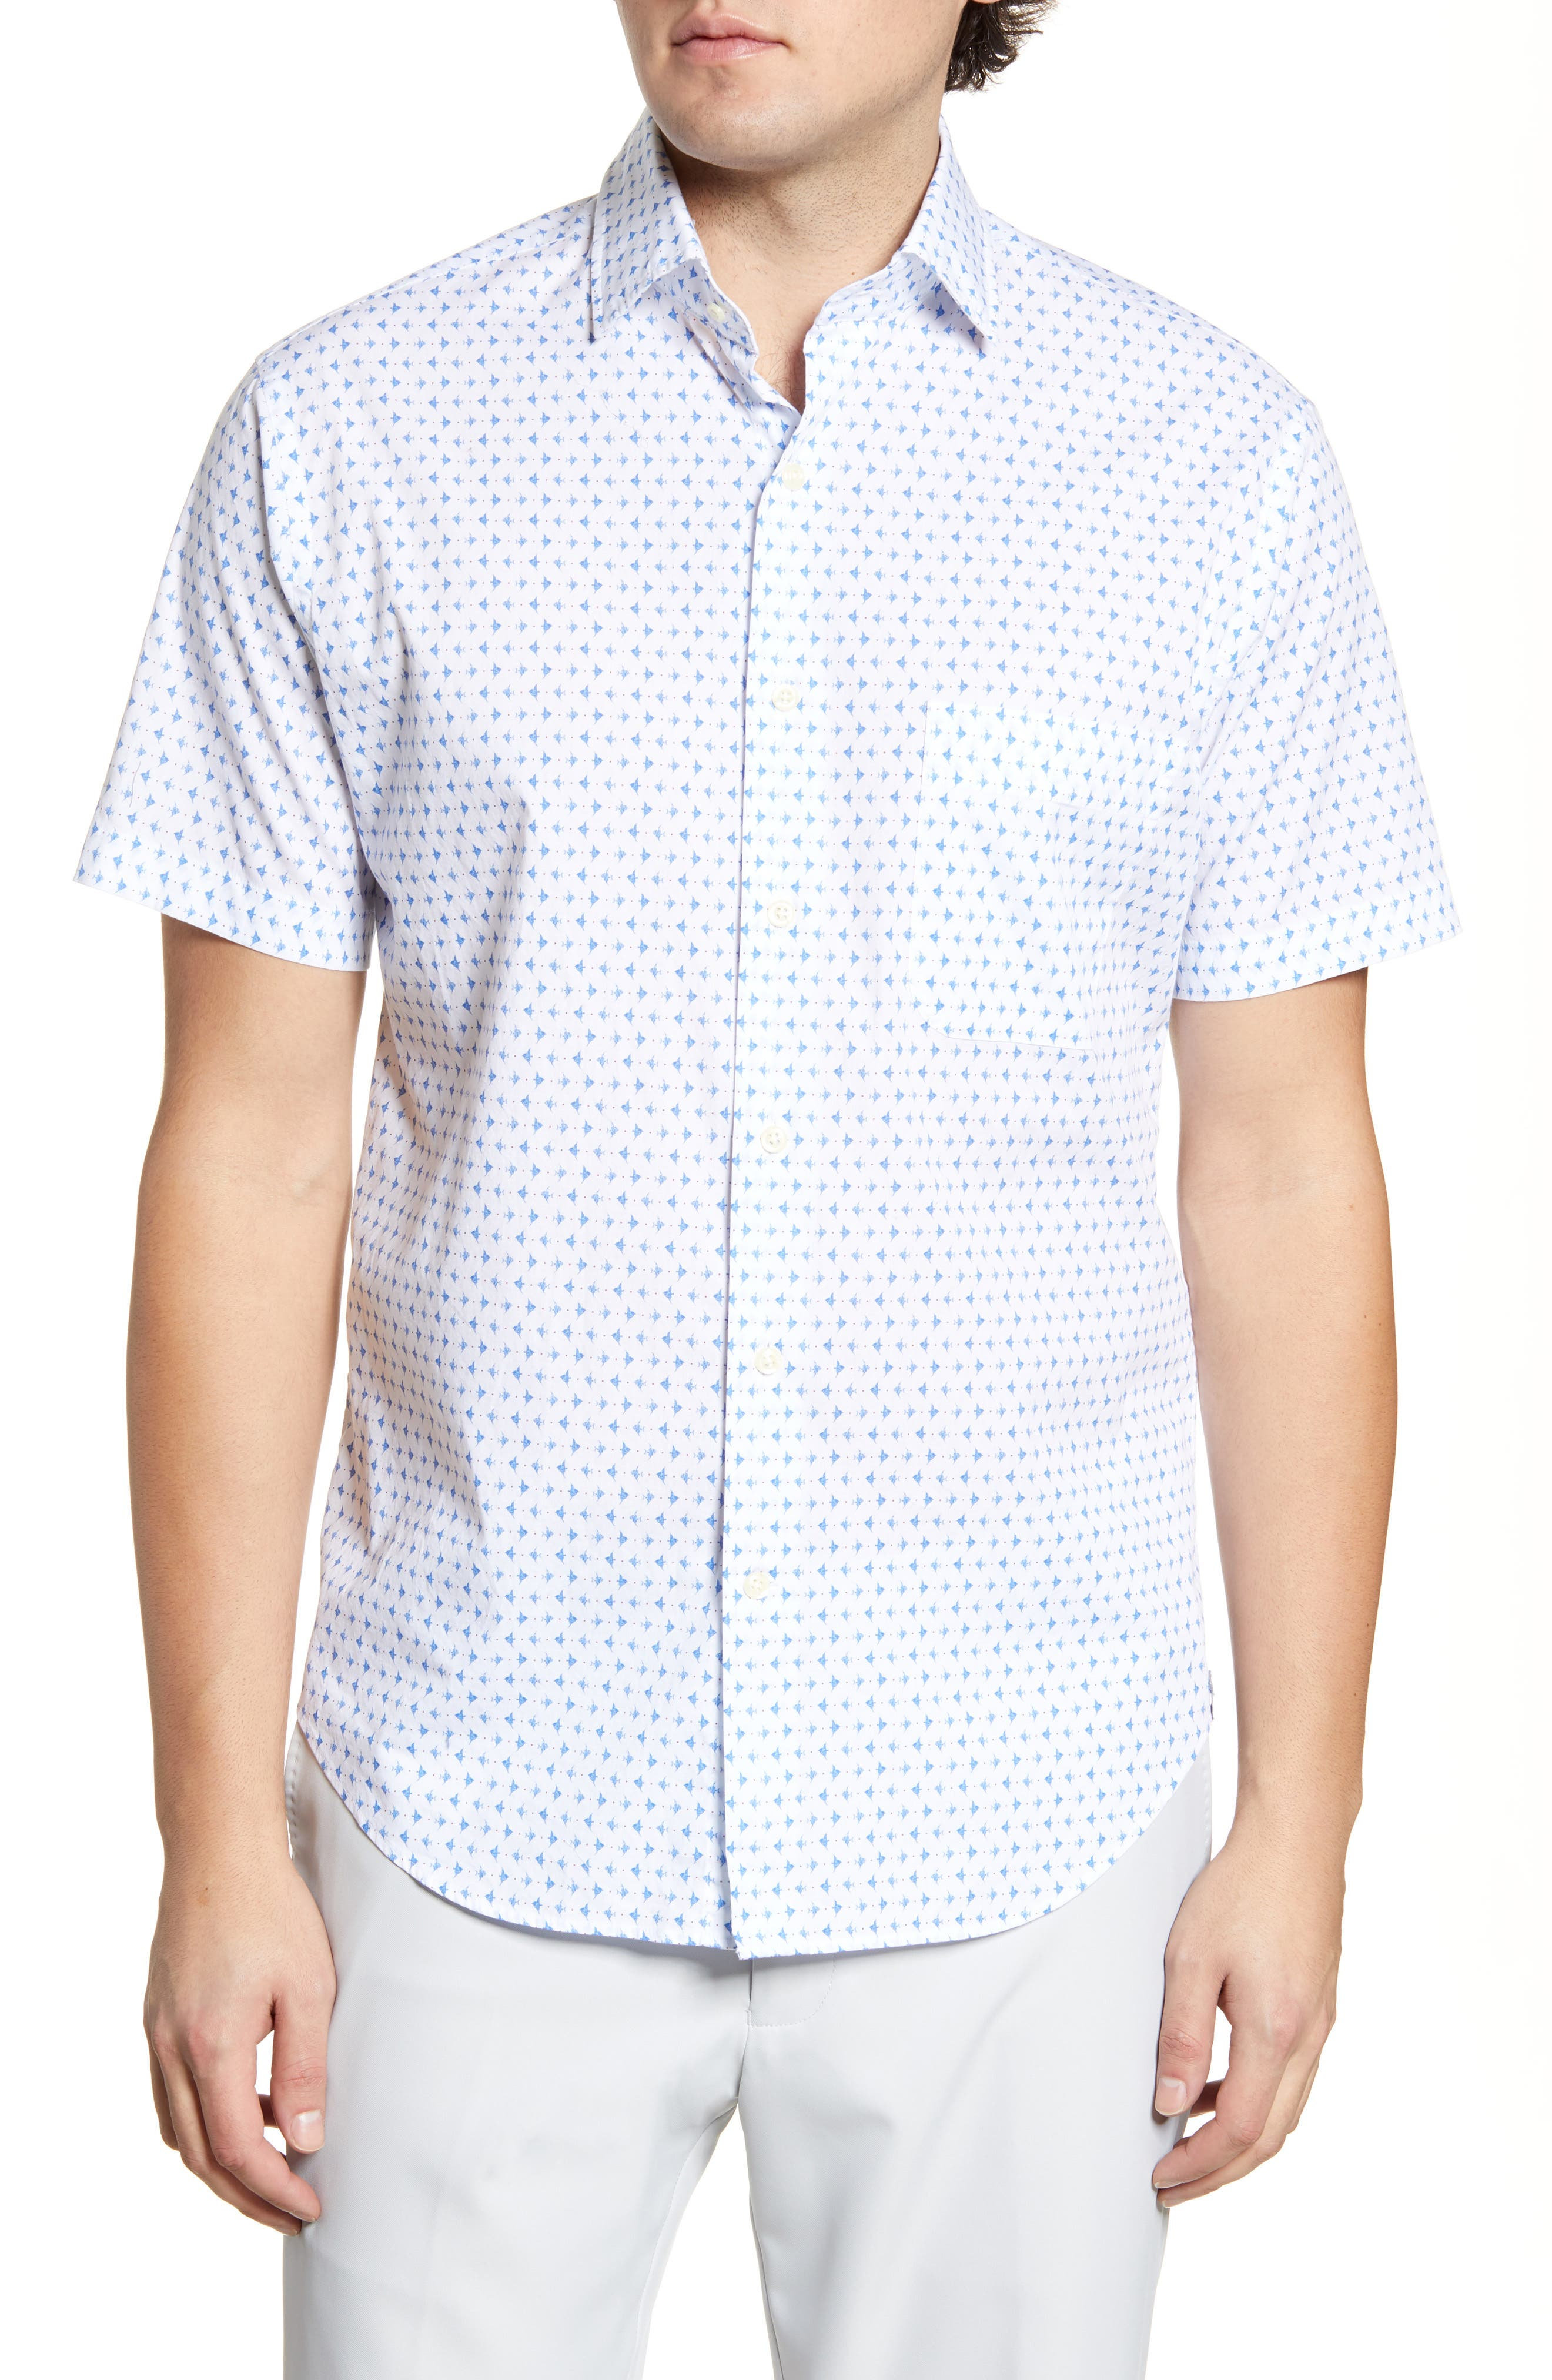 A micro fish print adds a splash of aquatic style to a short-sleeve sport shirt fashioned with a hint of stretch for added comfort. Style Name: Peter Millar Catch Of The Day Regular Fit Short Sleeve Button-Up Shirt. Style Number: 6001253. Available in stores.